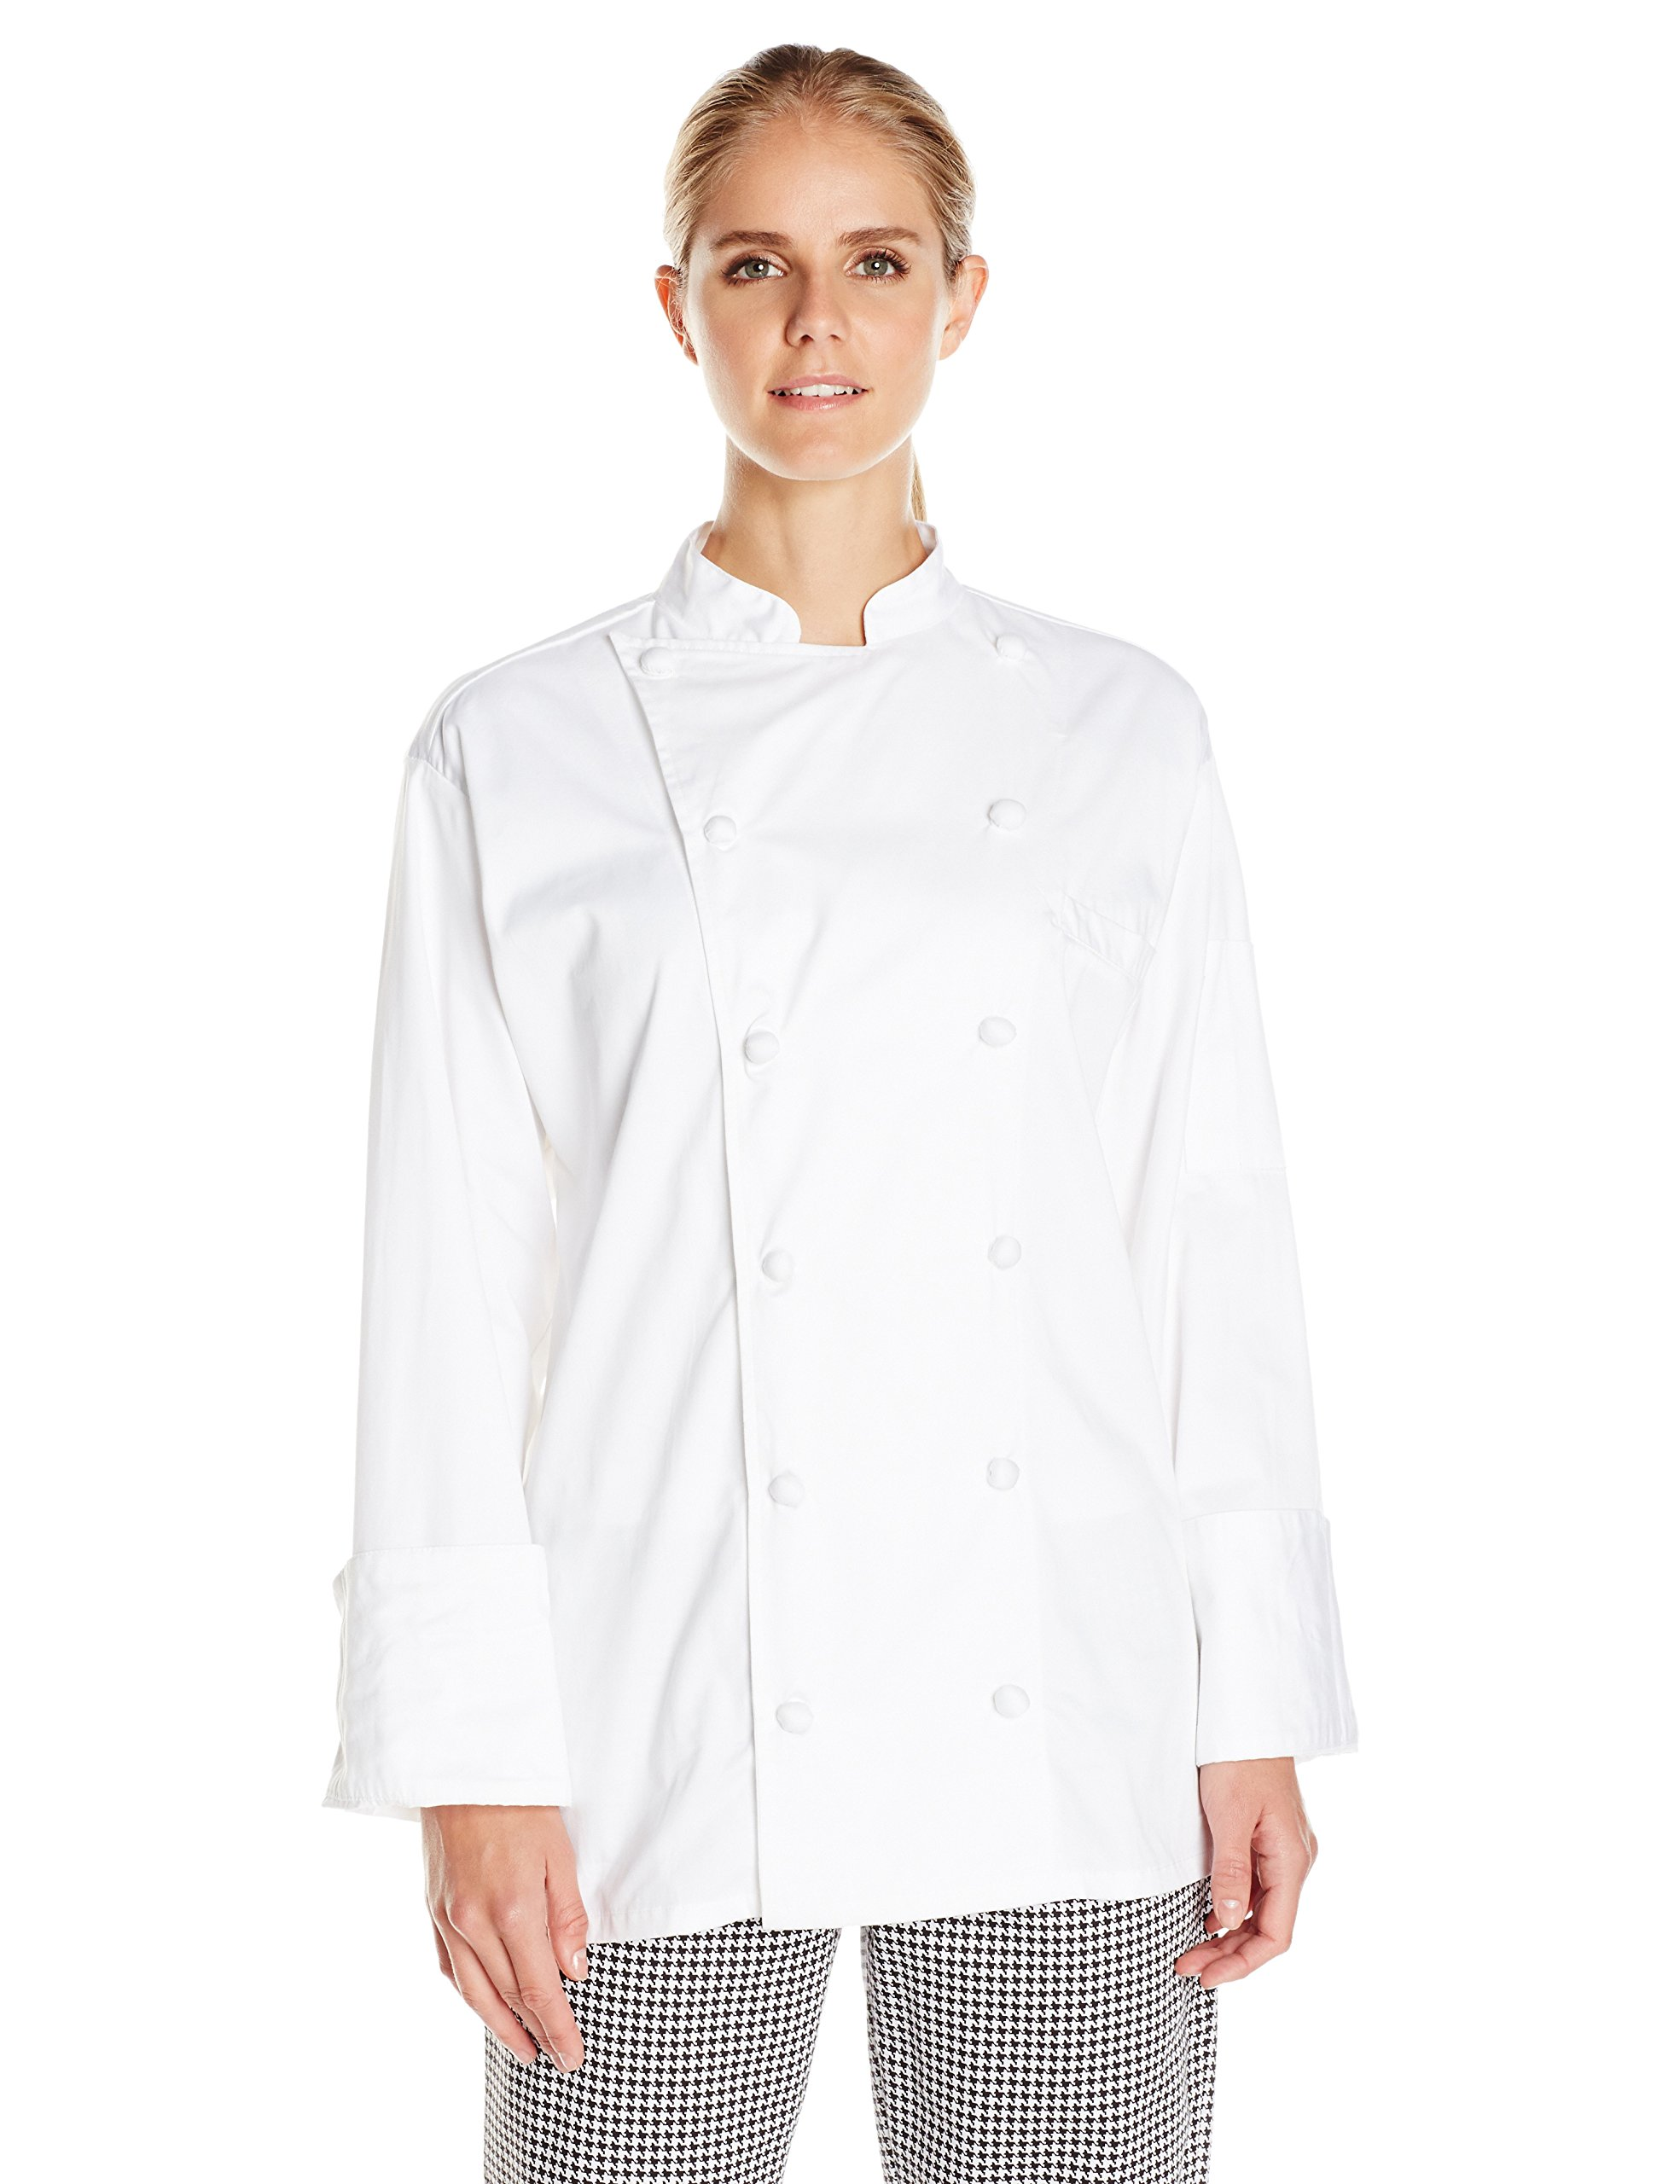 Uncommon Threads Unisex  Master Chef Coat, White, Small by Uncommon Threads